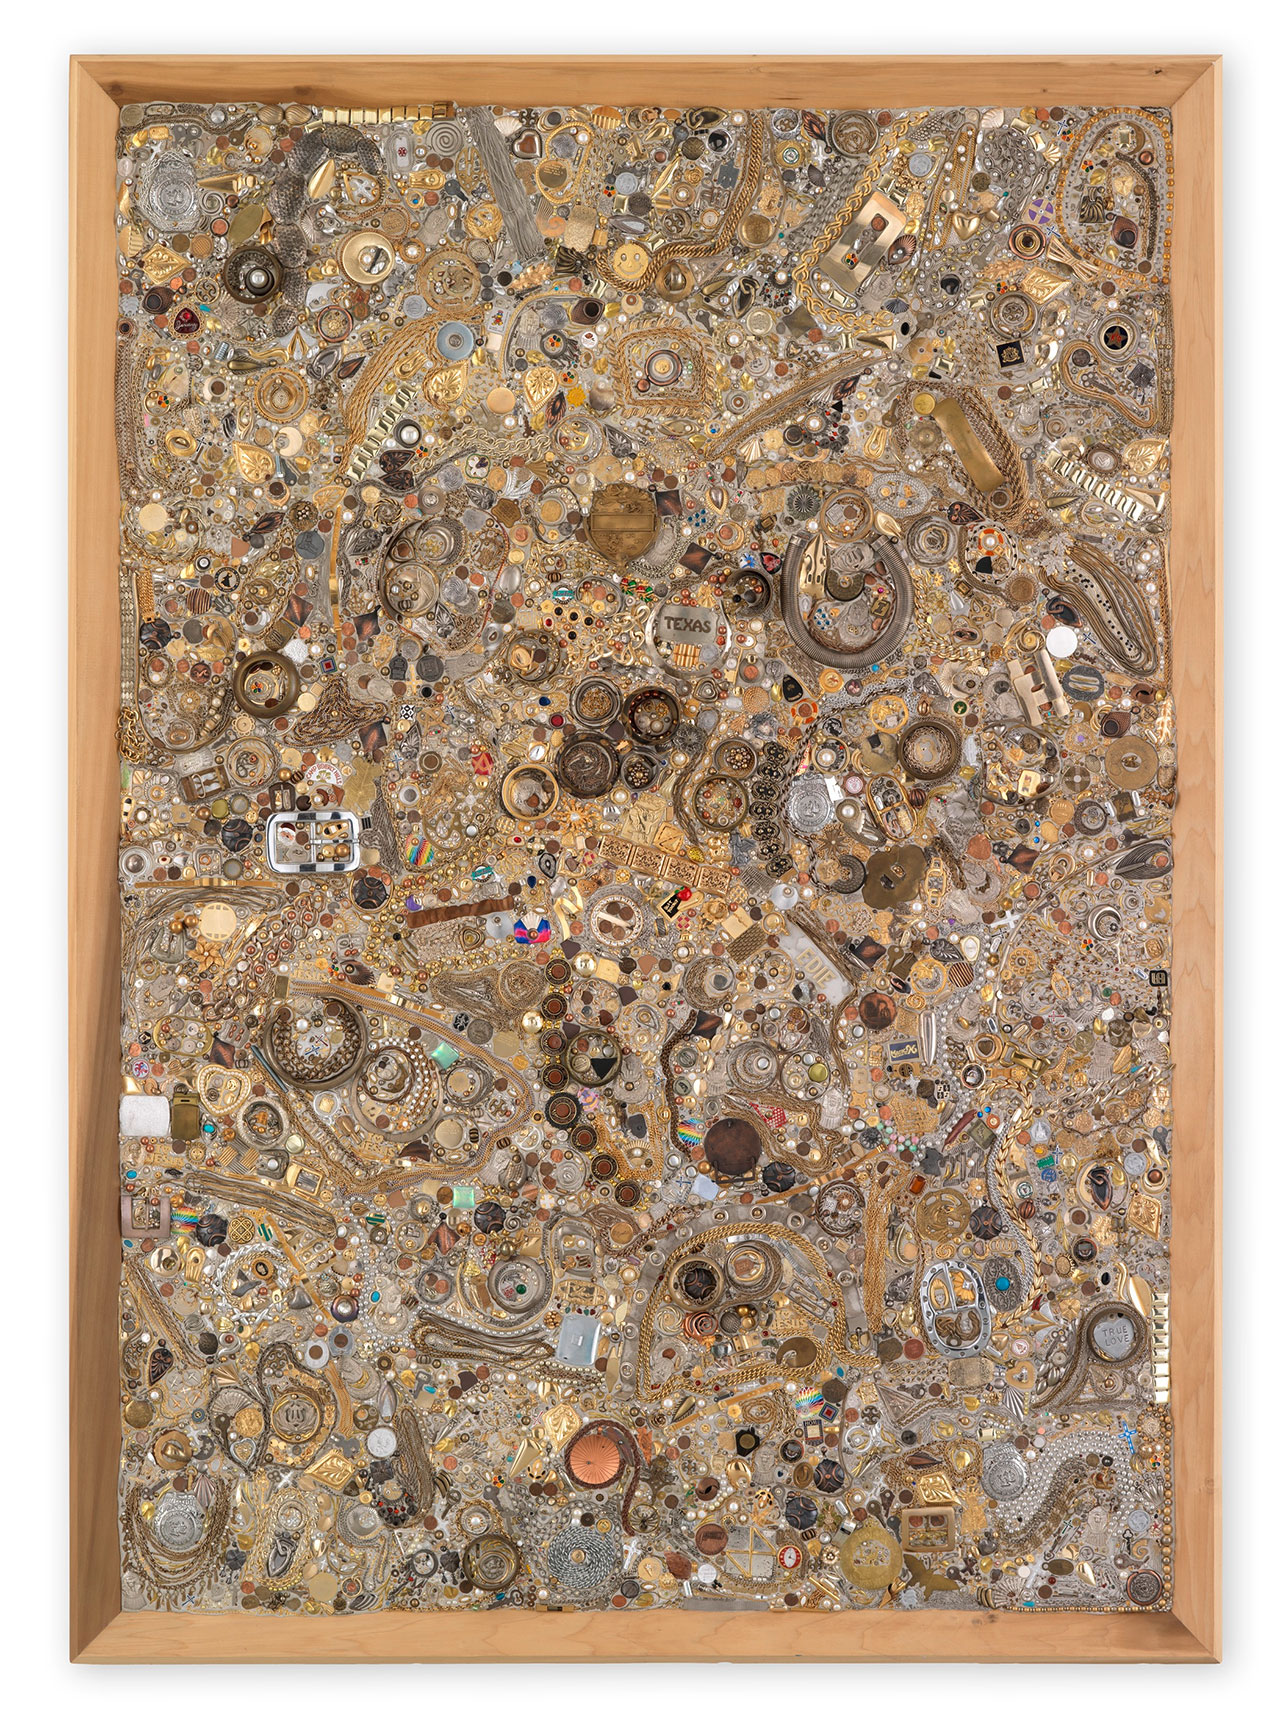 Mike Kelley, Memory Ware Flat #24, 2001. Mixed media on wood panel. 215.5 x 154 x 11.8 cm / 84 7/8 x 60 5/8 x 4 5/8 in. Art © Mike Kelley Foundation for the Arts. All Rights Reserved / Licensed by VAGA, New York, NY. Private Collection. Courtesy the Foundation and Hauser & Wirth. Photo by Stefan Altenburger Photography Zürich.